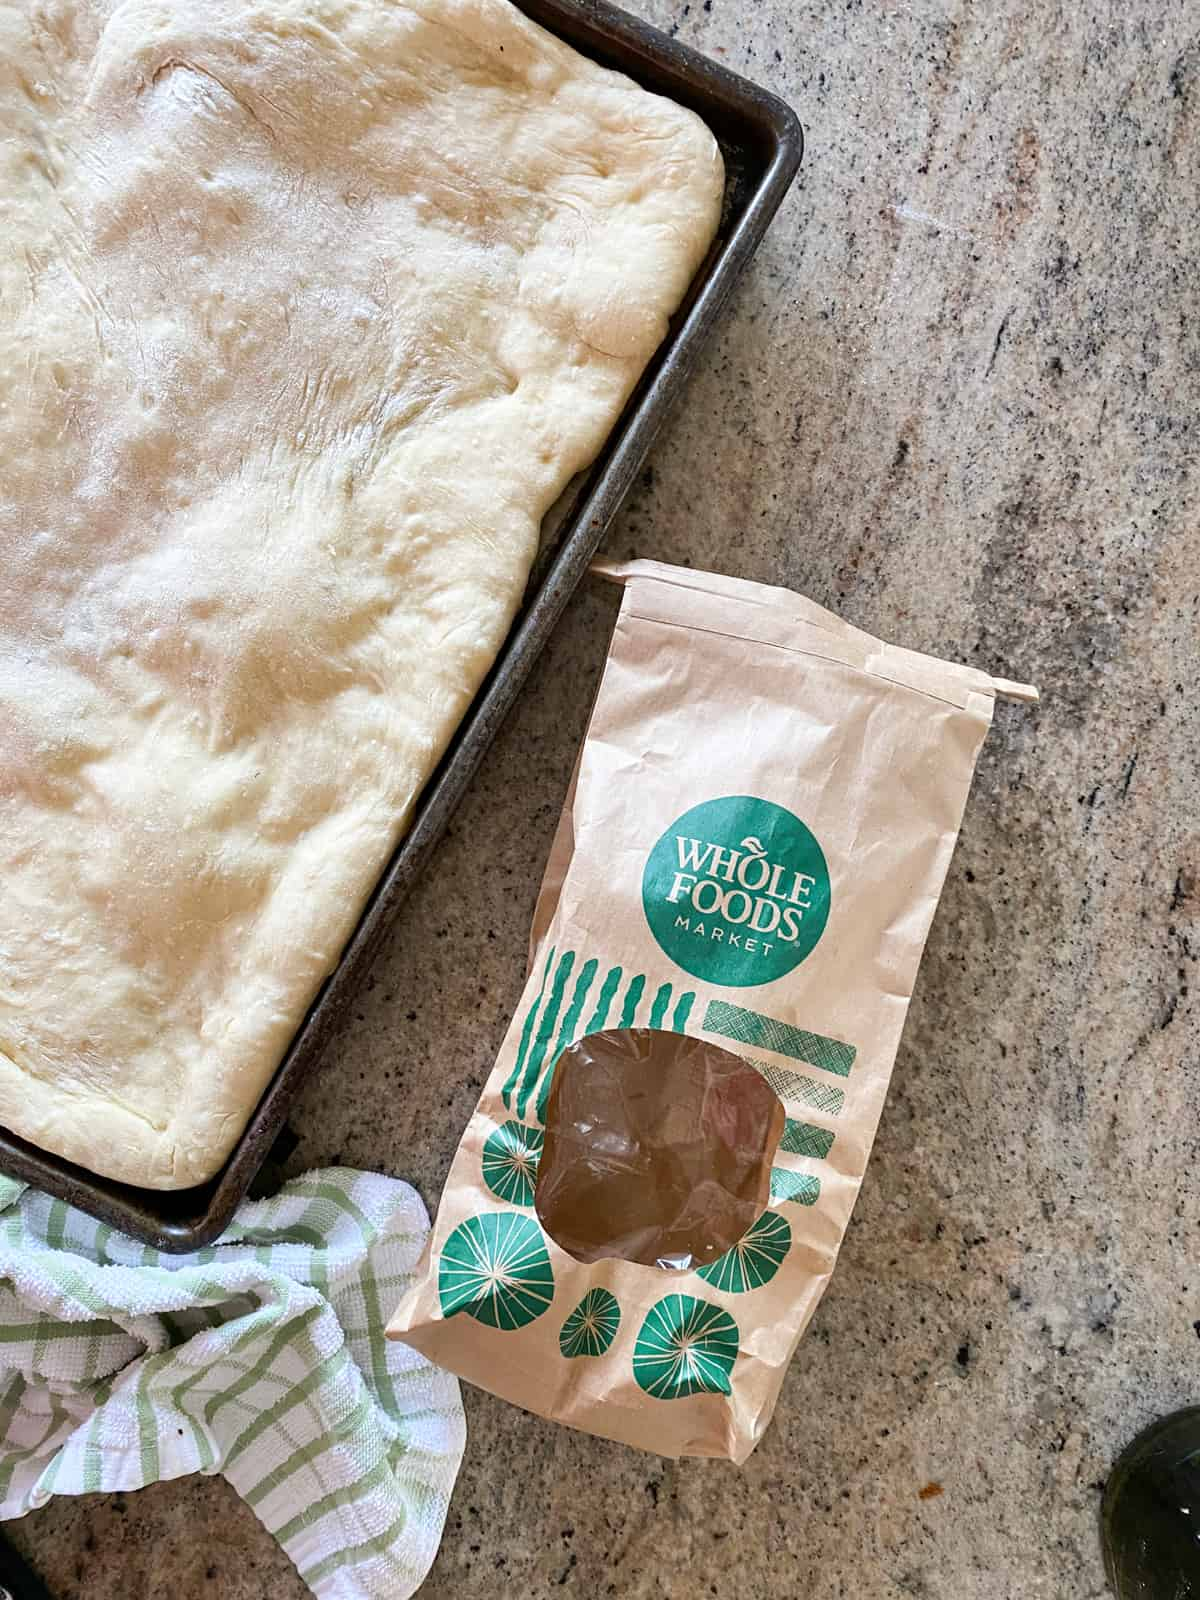 Top down shot of a bag of whole foods pizza dough next to parbaked pizza crust.